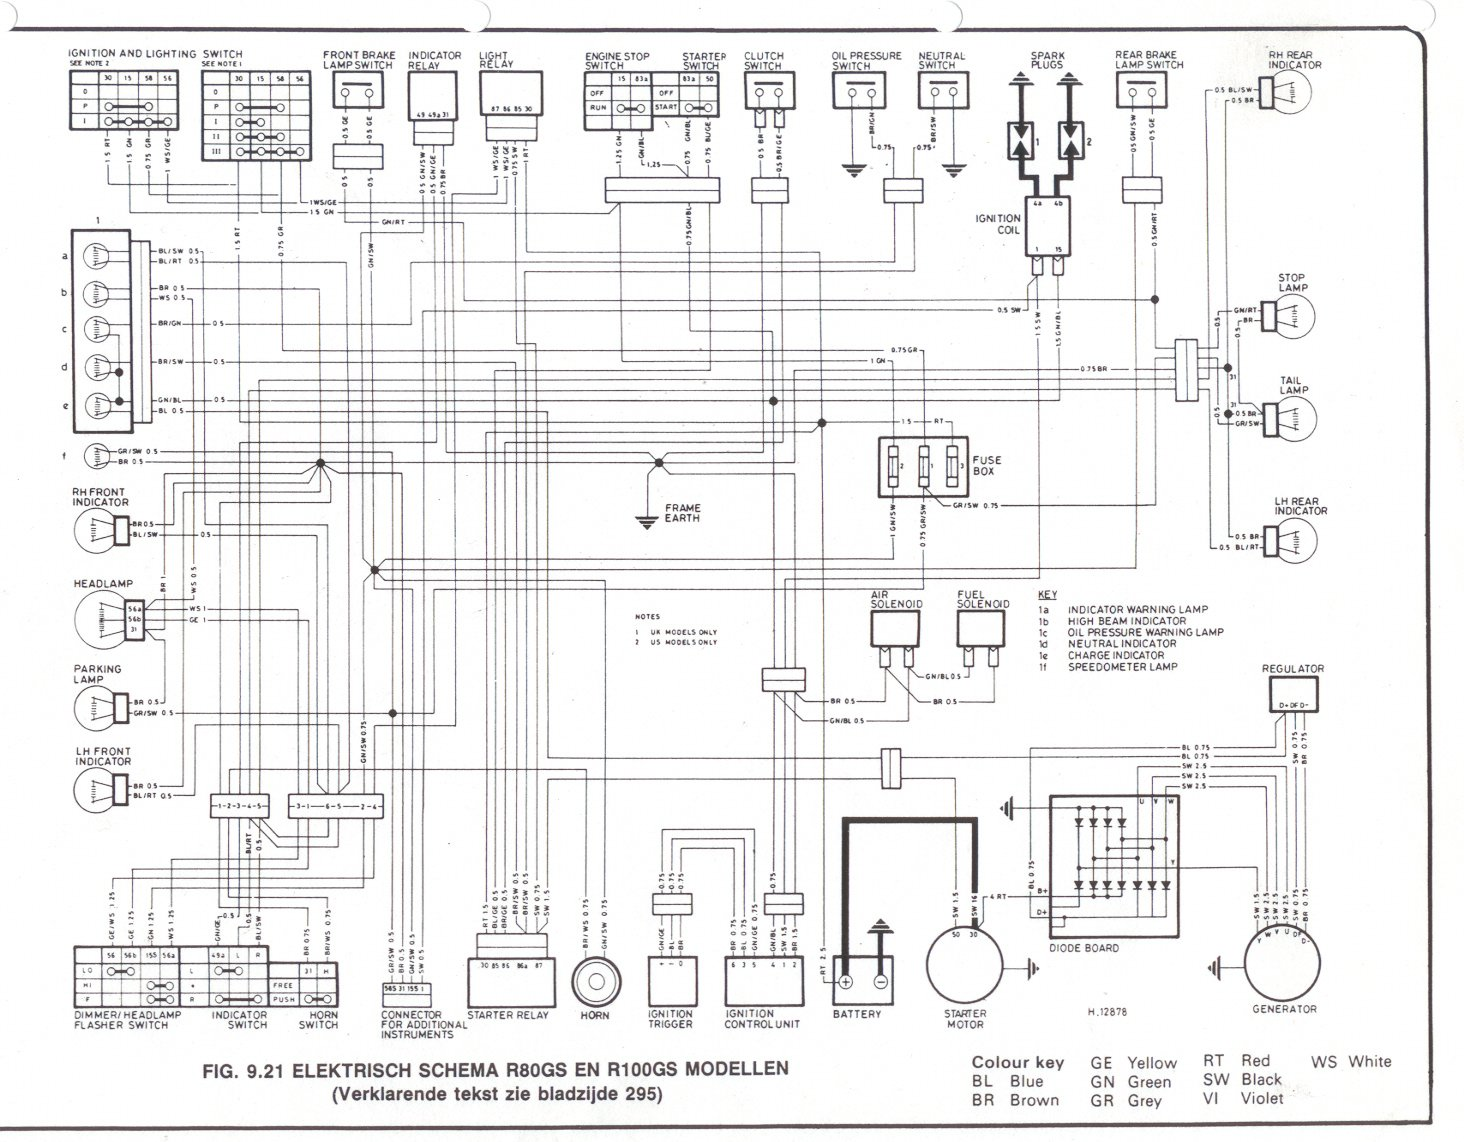 bmw r90 wiring diagram wiring diagram autovehiclemotorcycle wiring diagrams r90 wiring diagram technicmotorcycle wiring diagrams r90 [ 1464 x 1142 Pixel ]